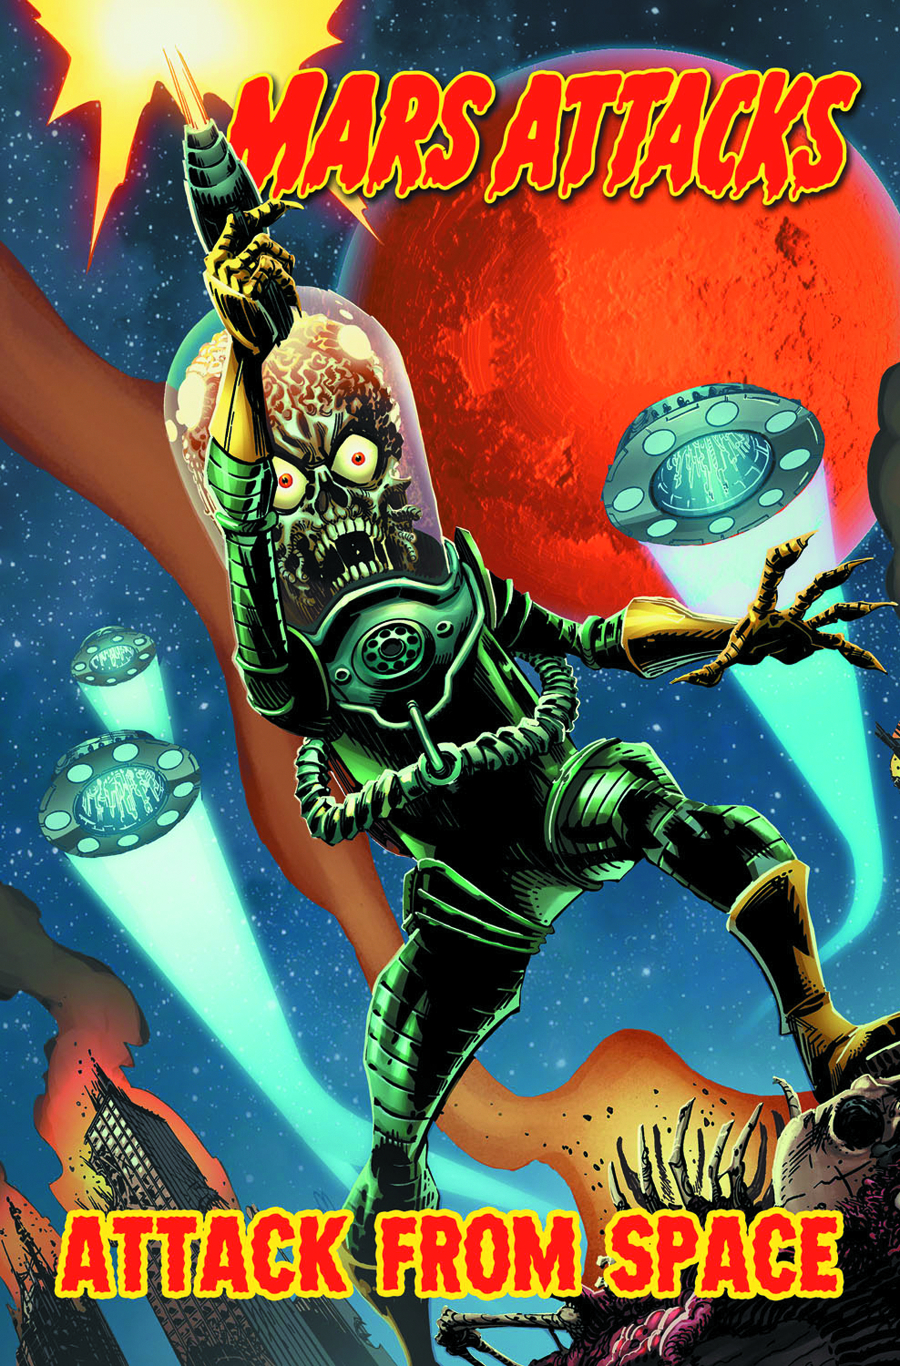 MARS ATTACKS TP VOL 01 ATTACK FROM SPACE